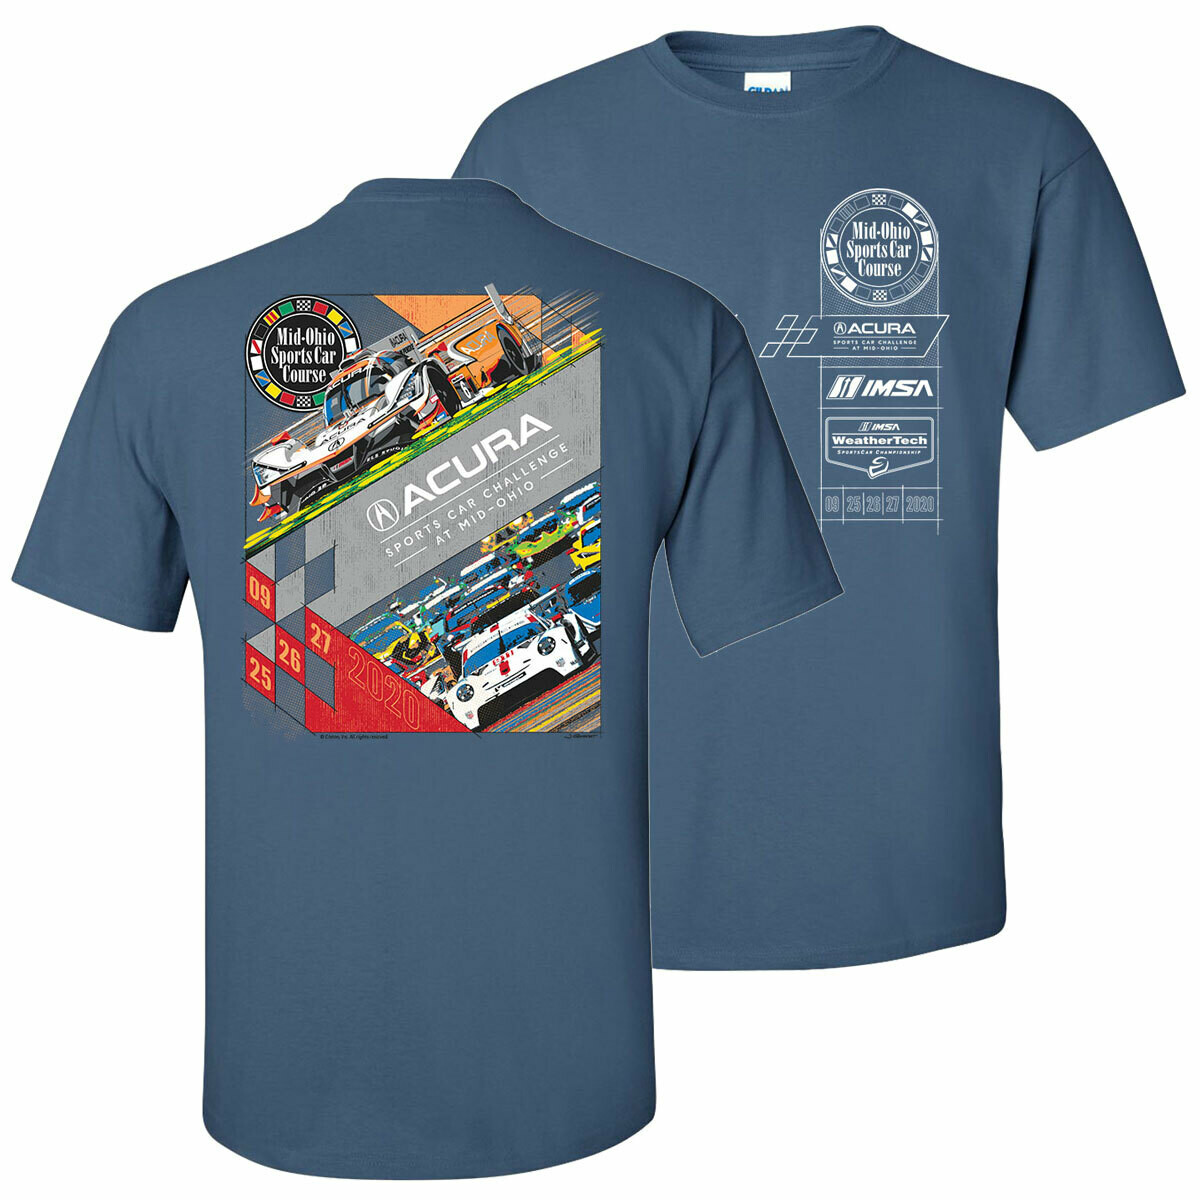 2020 Acura Sports Car Challenge Official Event Tee